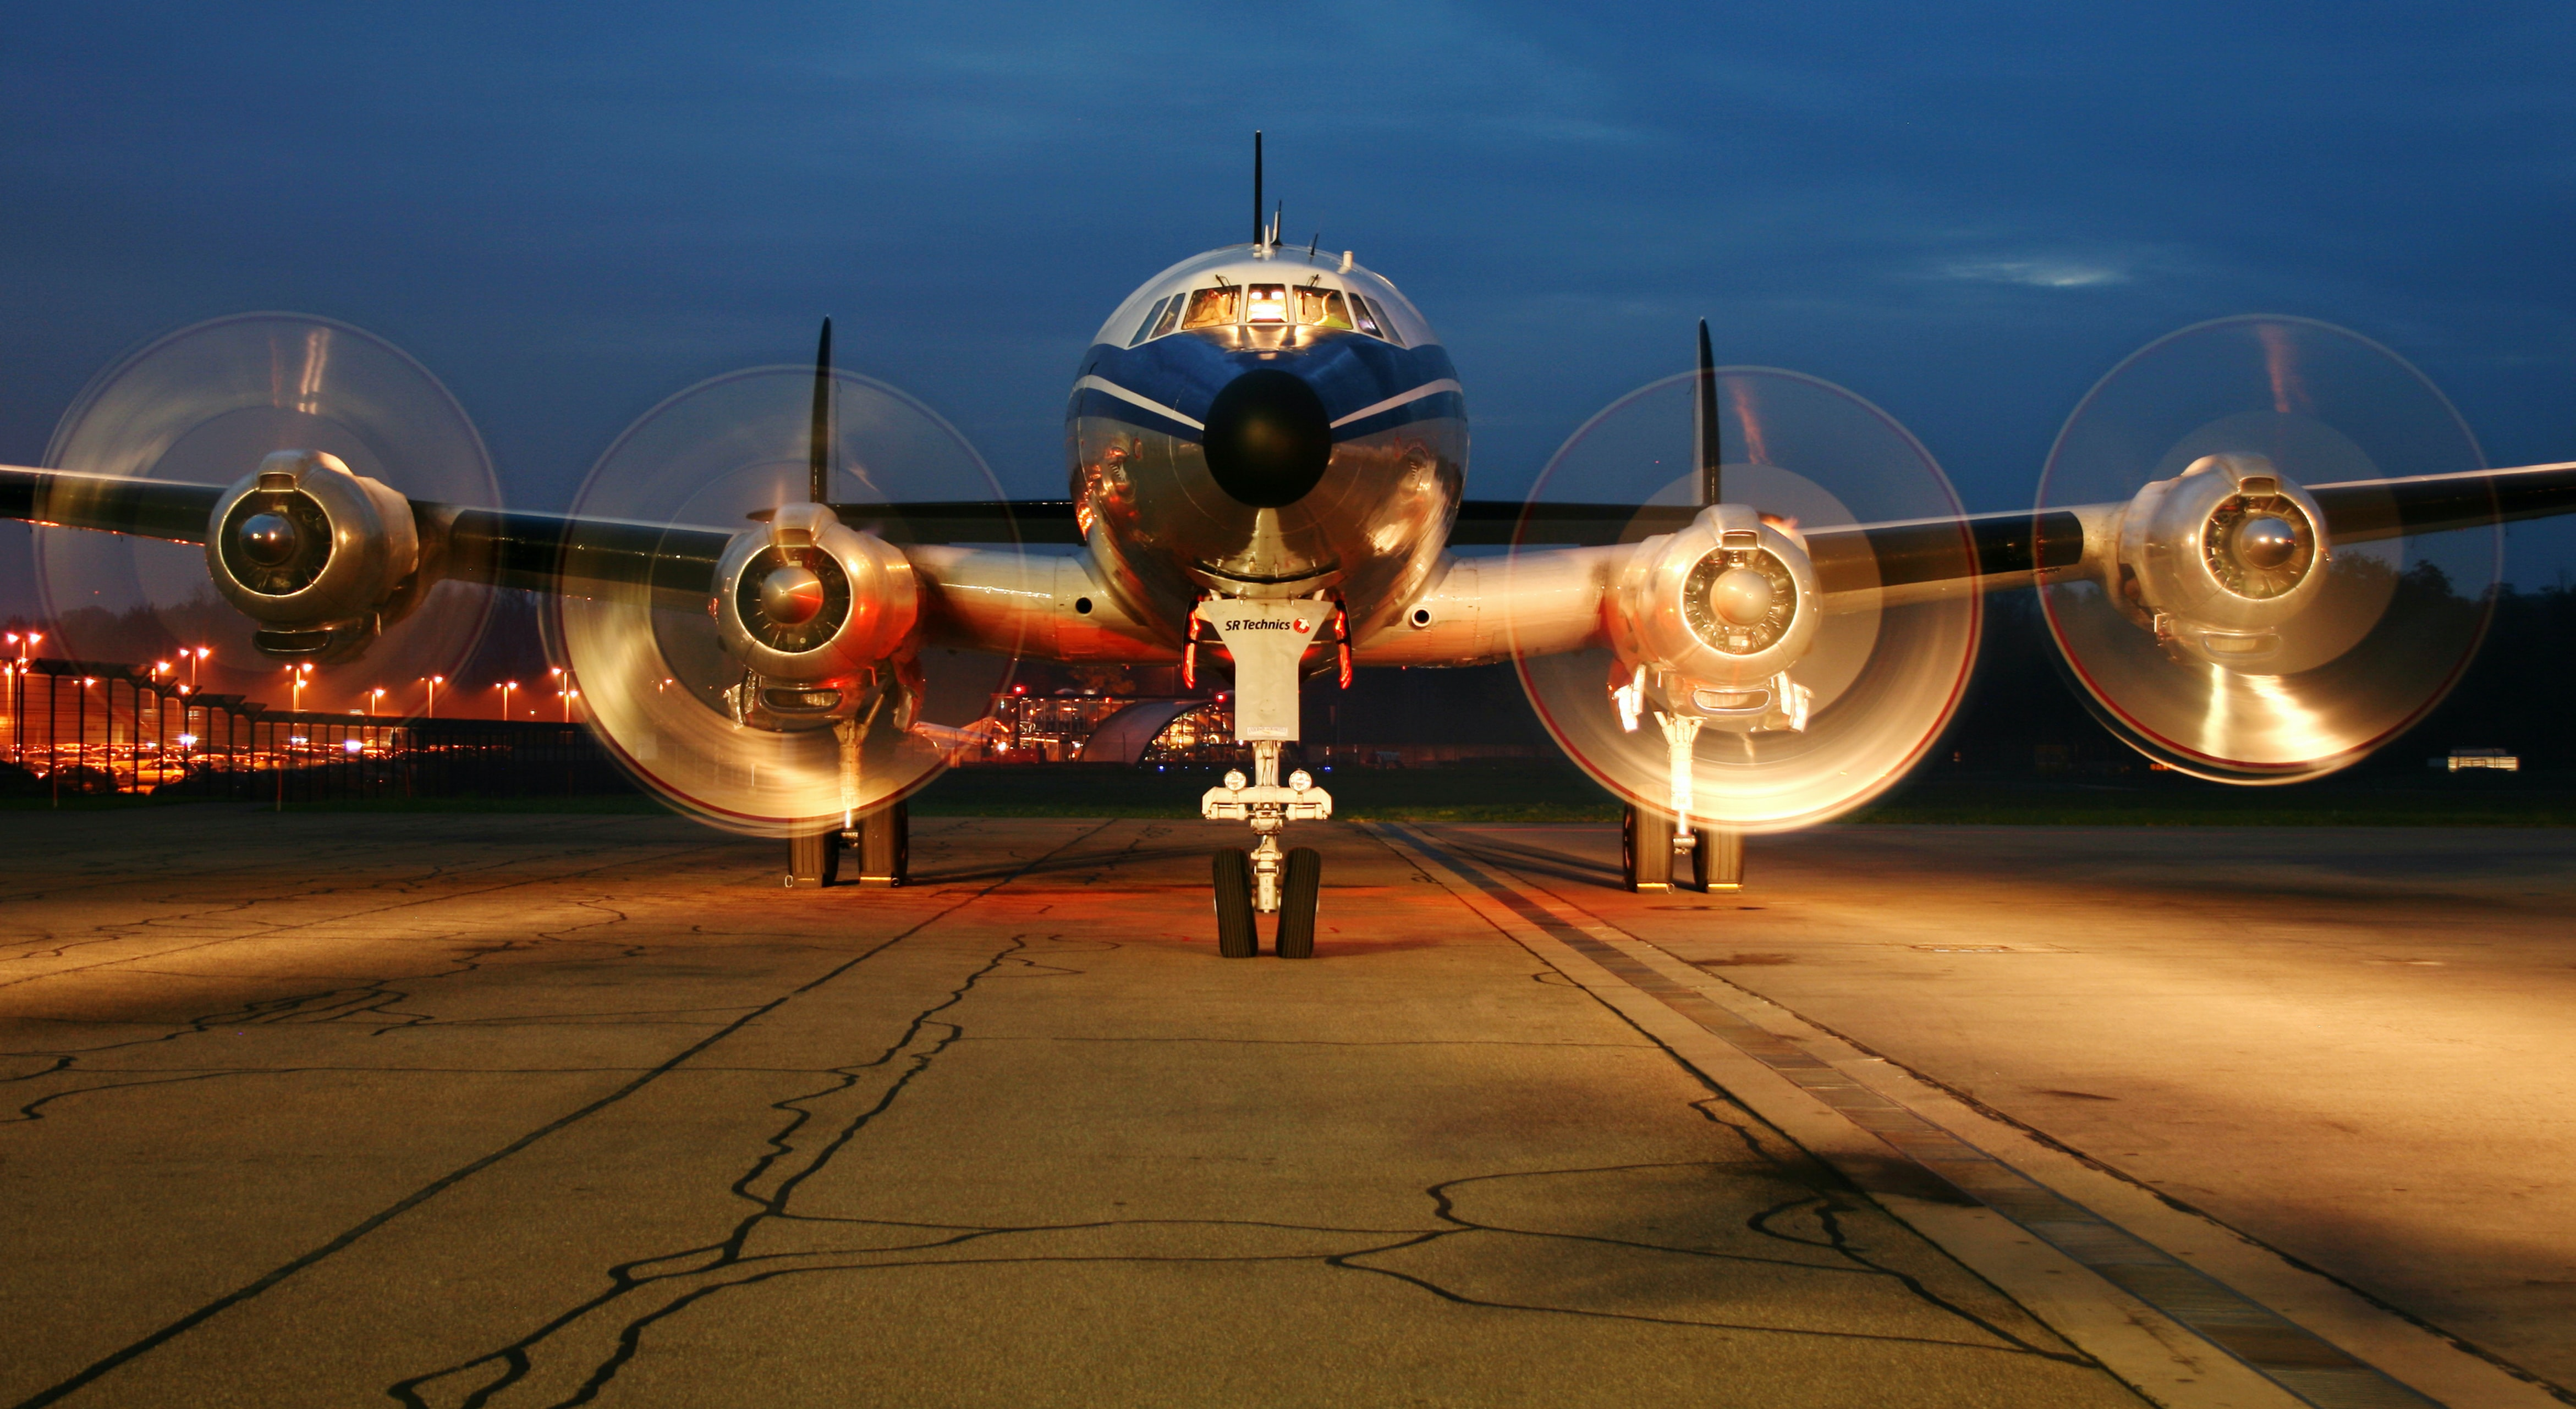 Front view of airplane with propellers spinning.